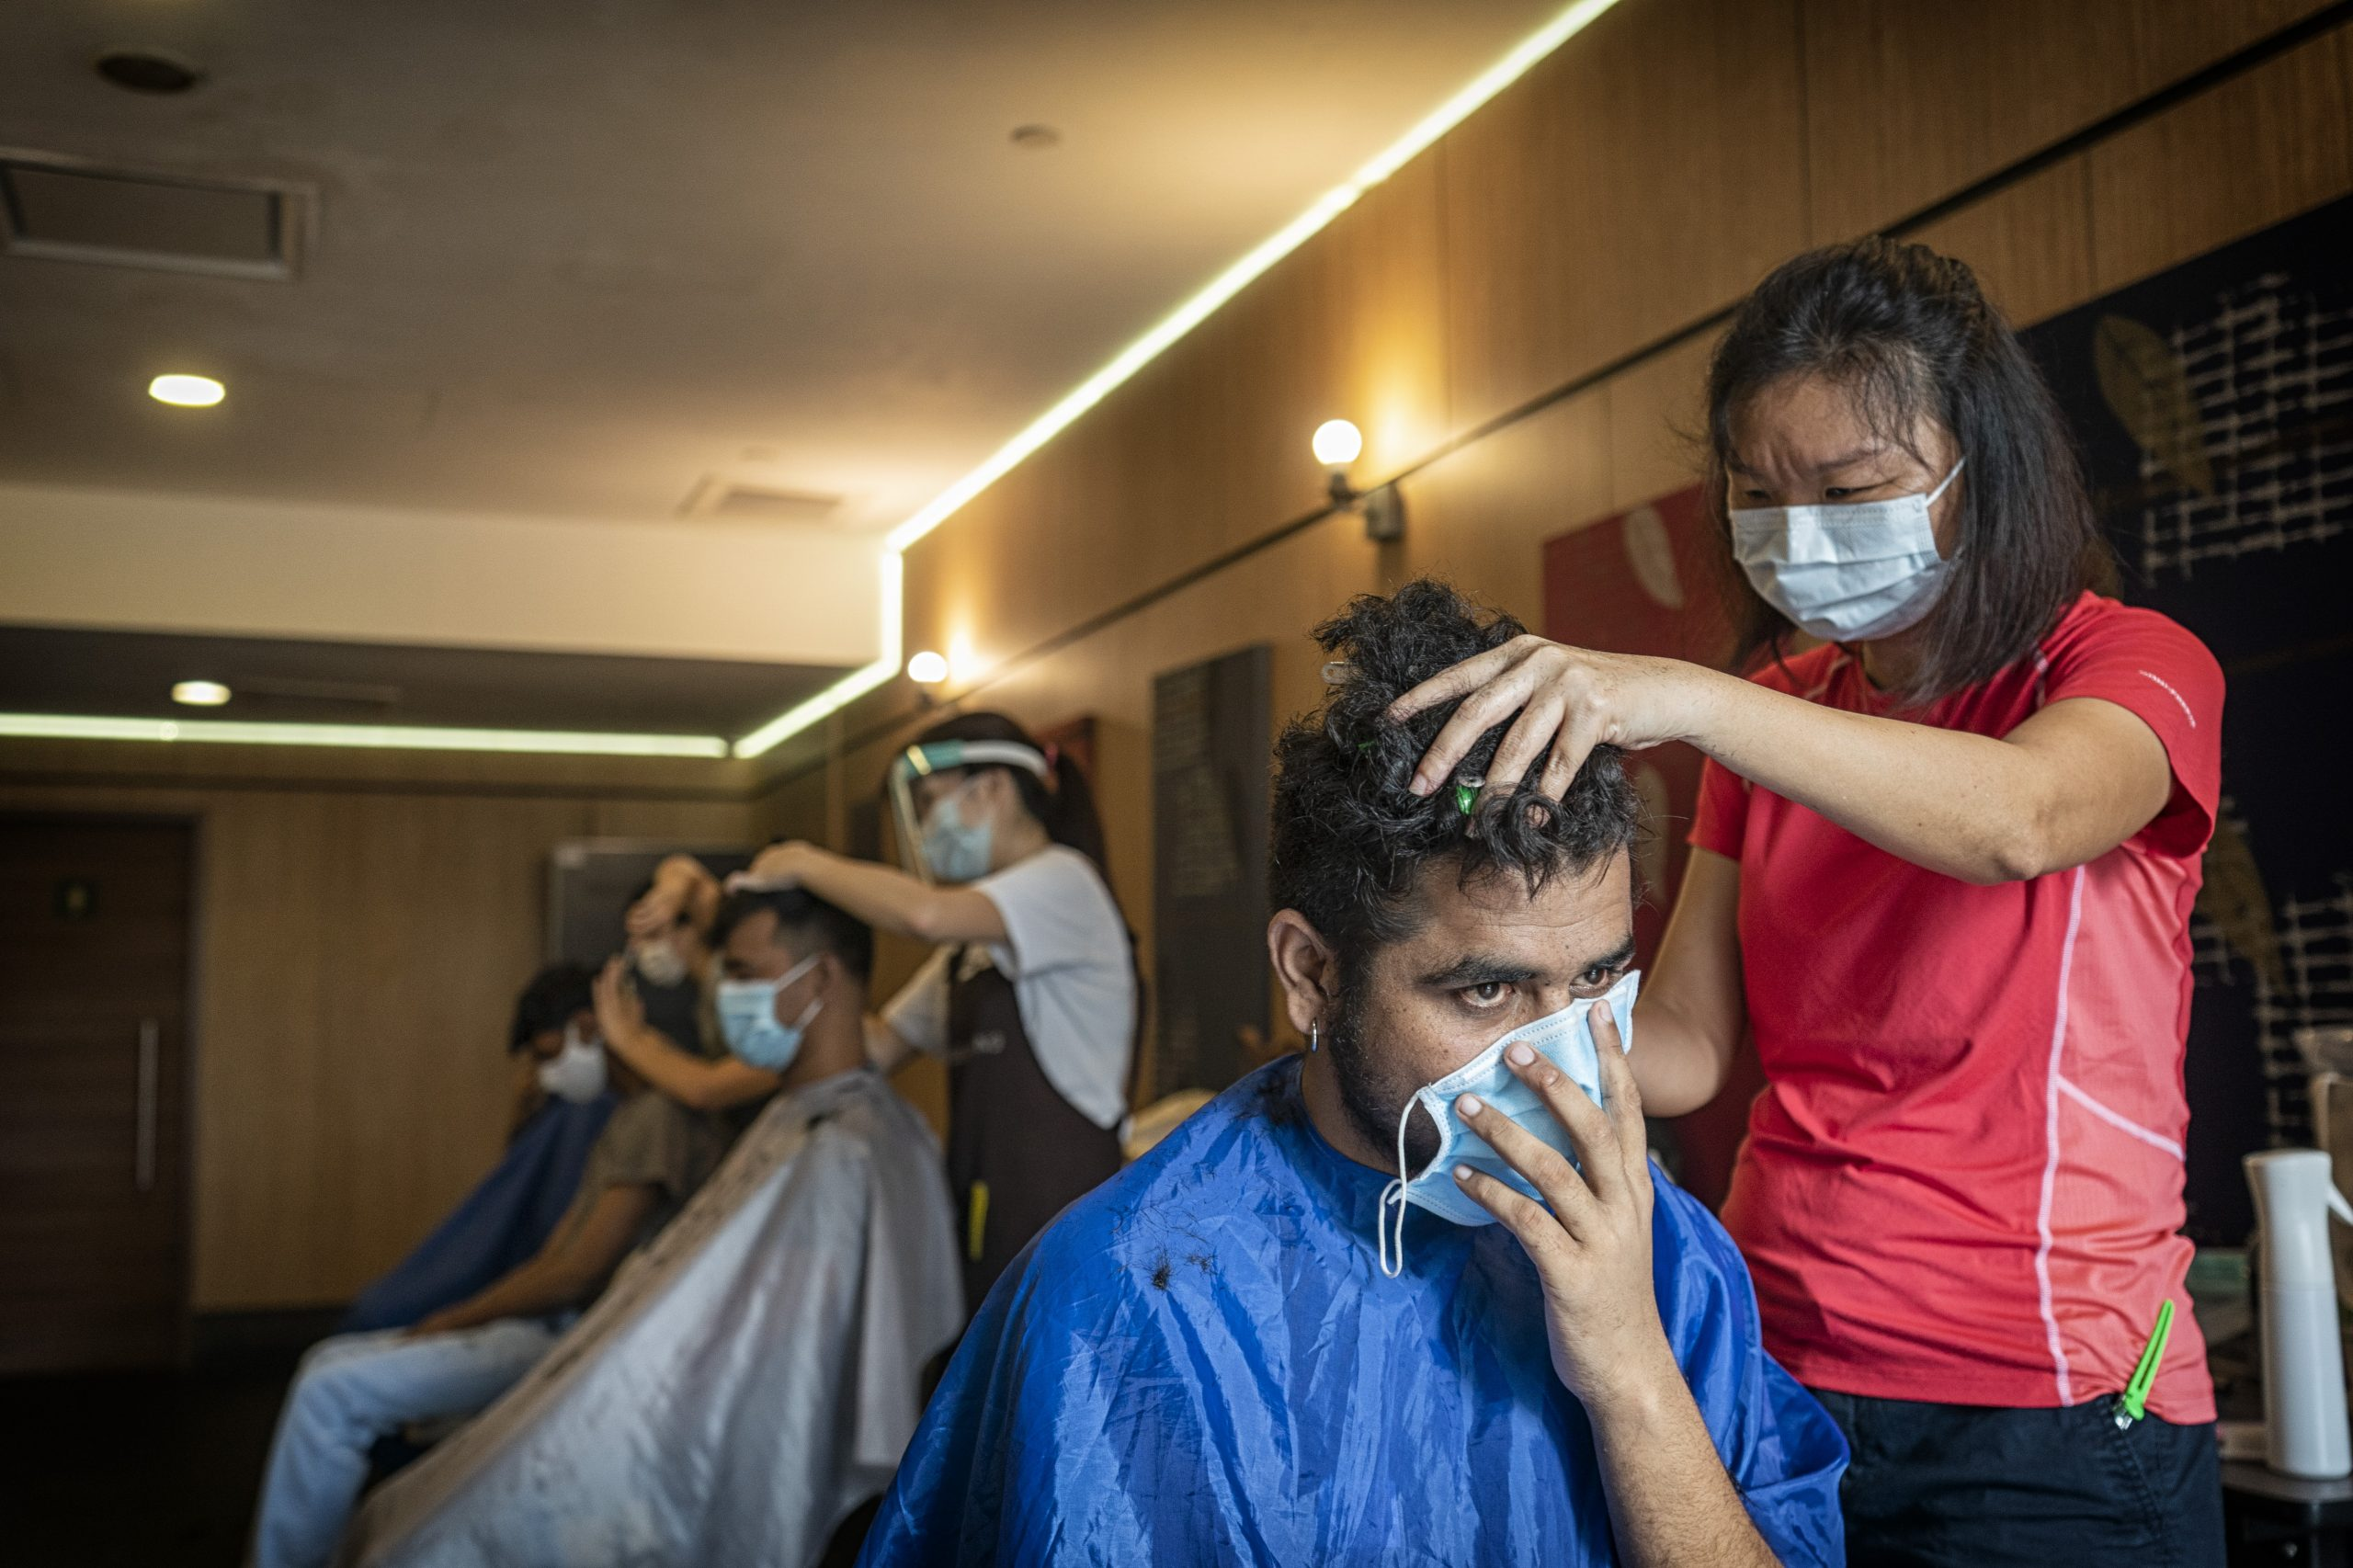 Trained hairdressers, volunteers from Backalley Barbers, offer their time to groom the migrant workers after months of dealing with overgrown locks.